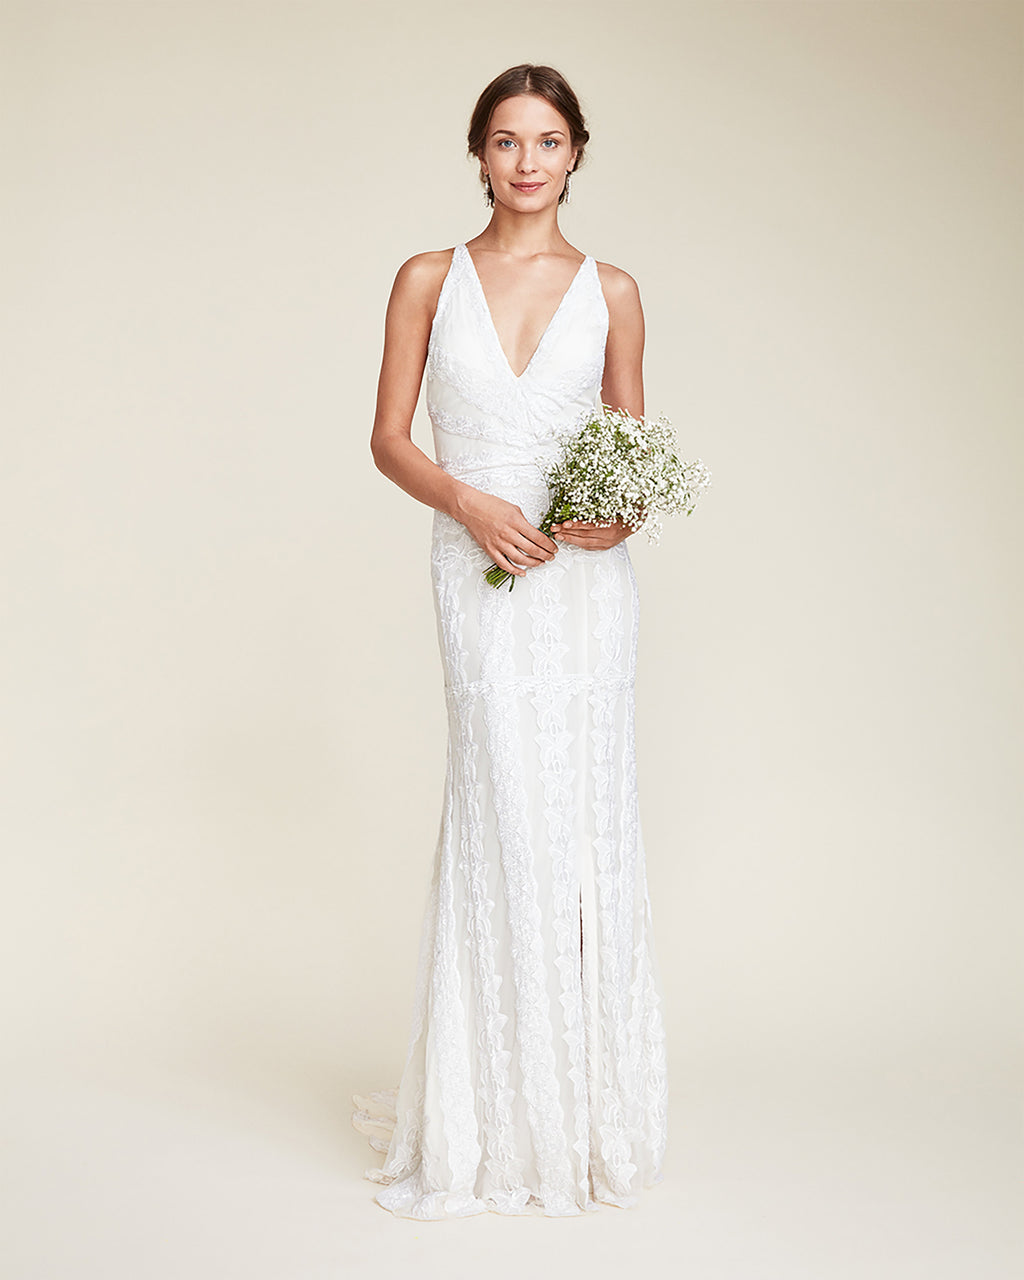 FJ10026 - BIANCA GOWN - bridal collection - bridal - Detailed embroidery throughout, this bridal gown is finished with an open back detail. Completed with a v-neck line and slit, this feminine gown is finished with a concealed zipper for closure.~fsbr